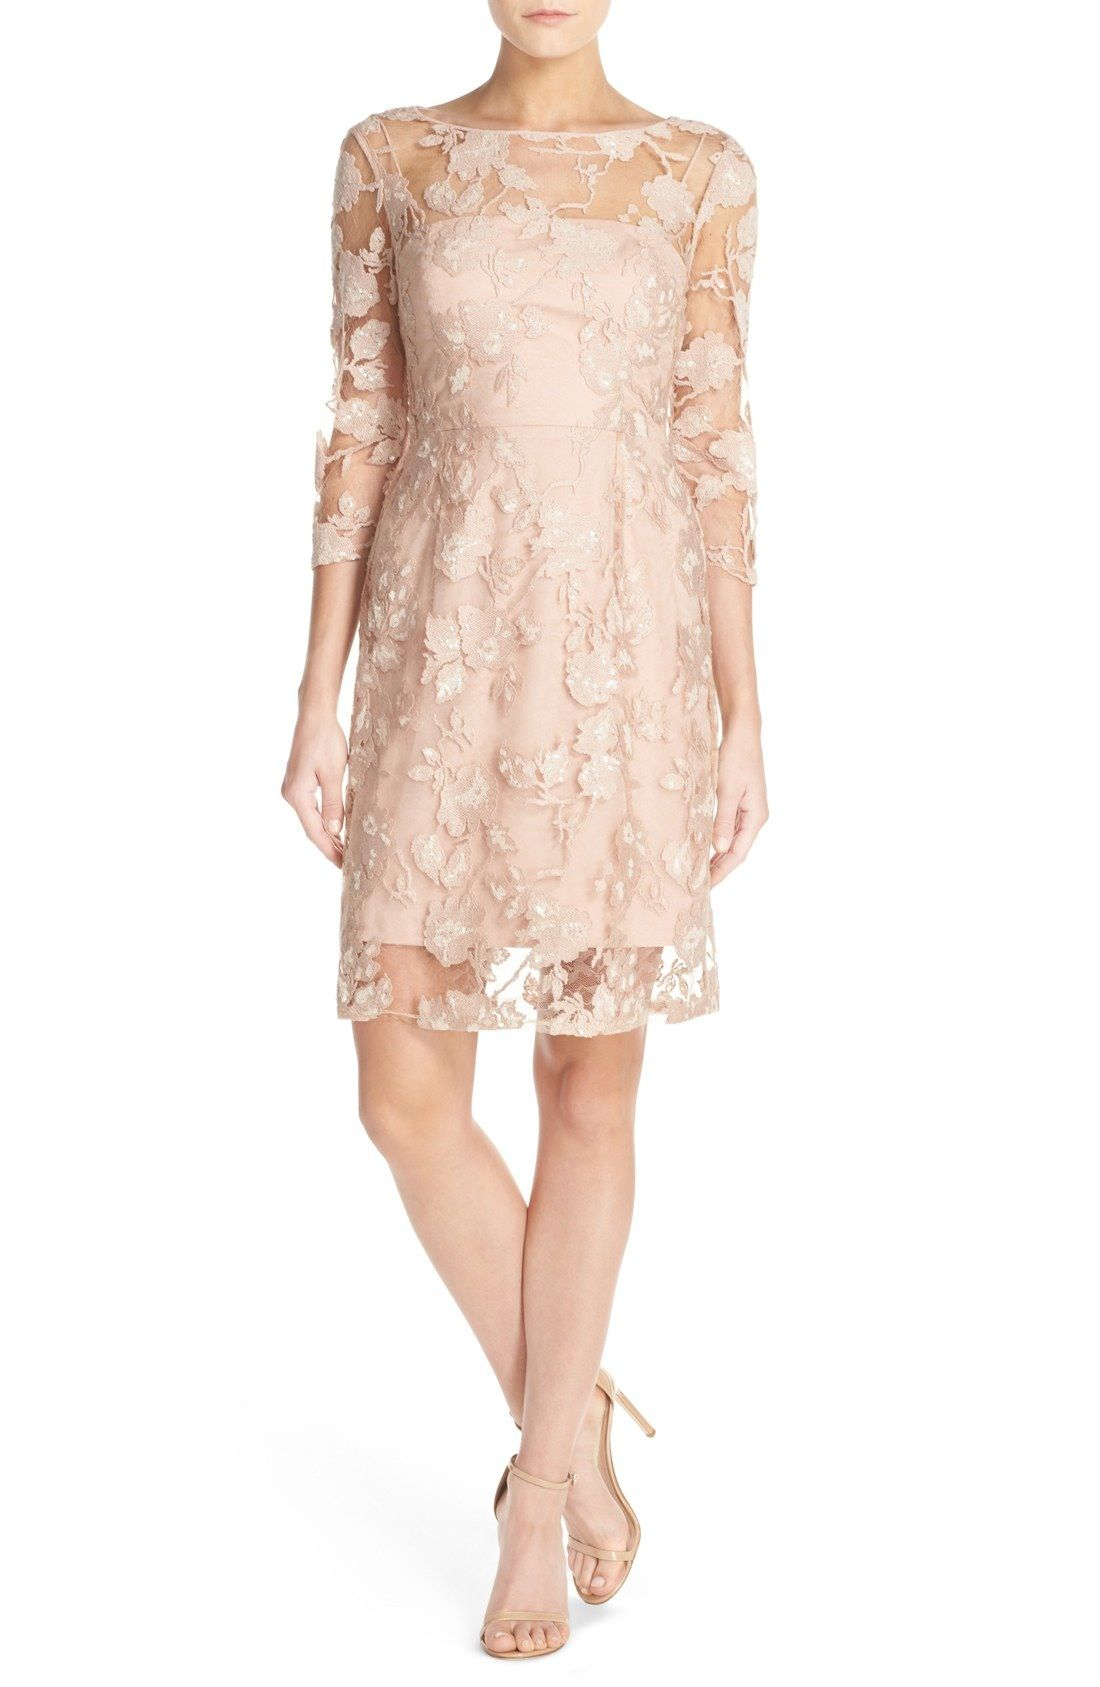 Nordstrom dresses wedding guest  Vera Wang Sequin Embroidered Lace ALine Dress available at